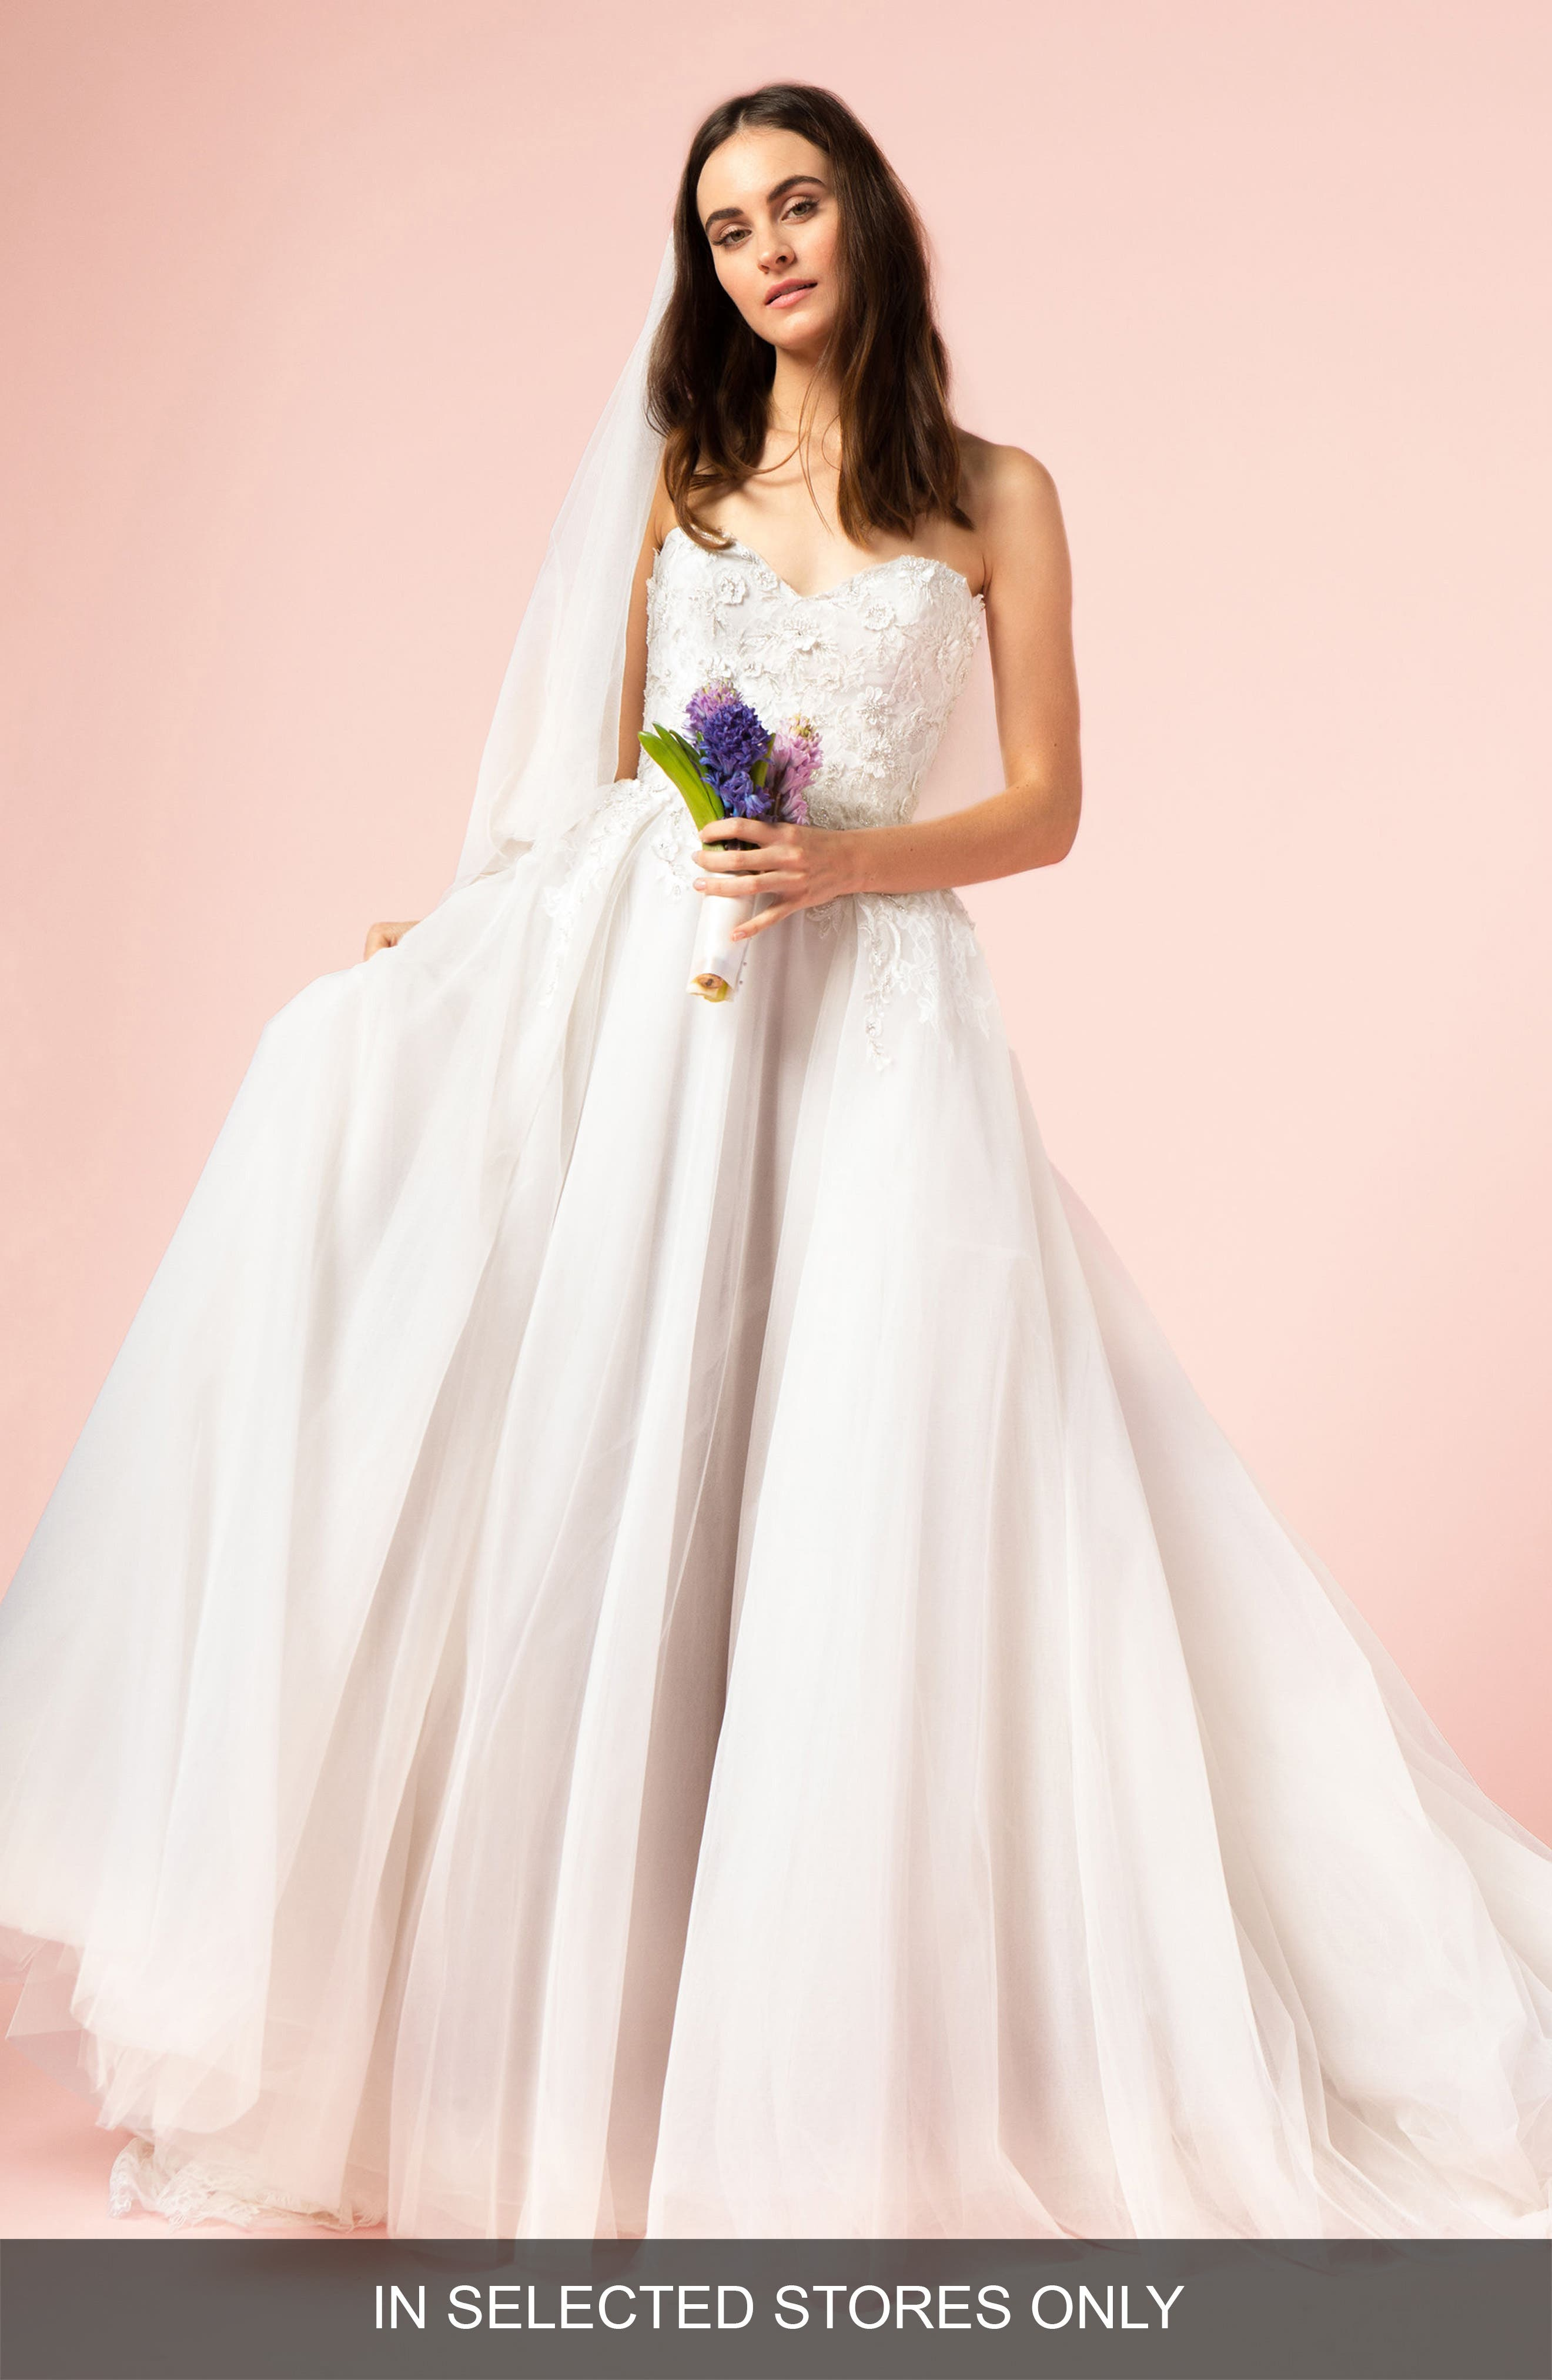 Strapless Sweetheart Gown,                             Main thumbnail 1, color,                             Silk White/Latte